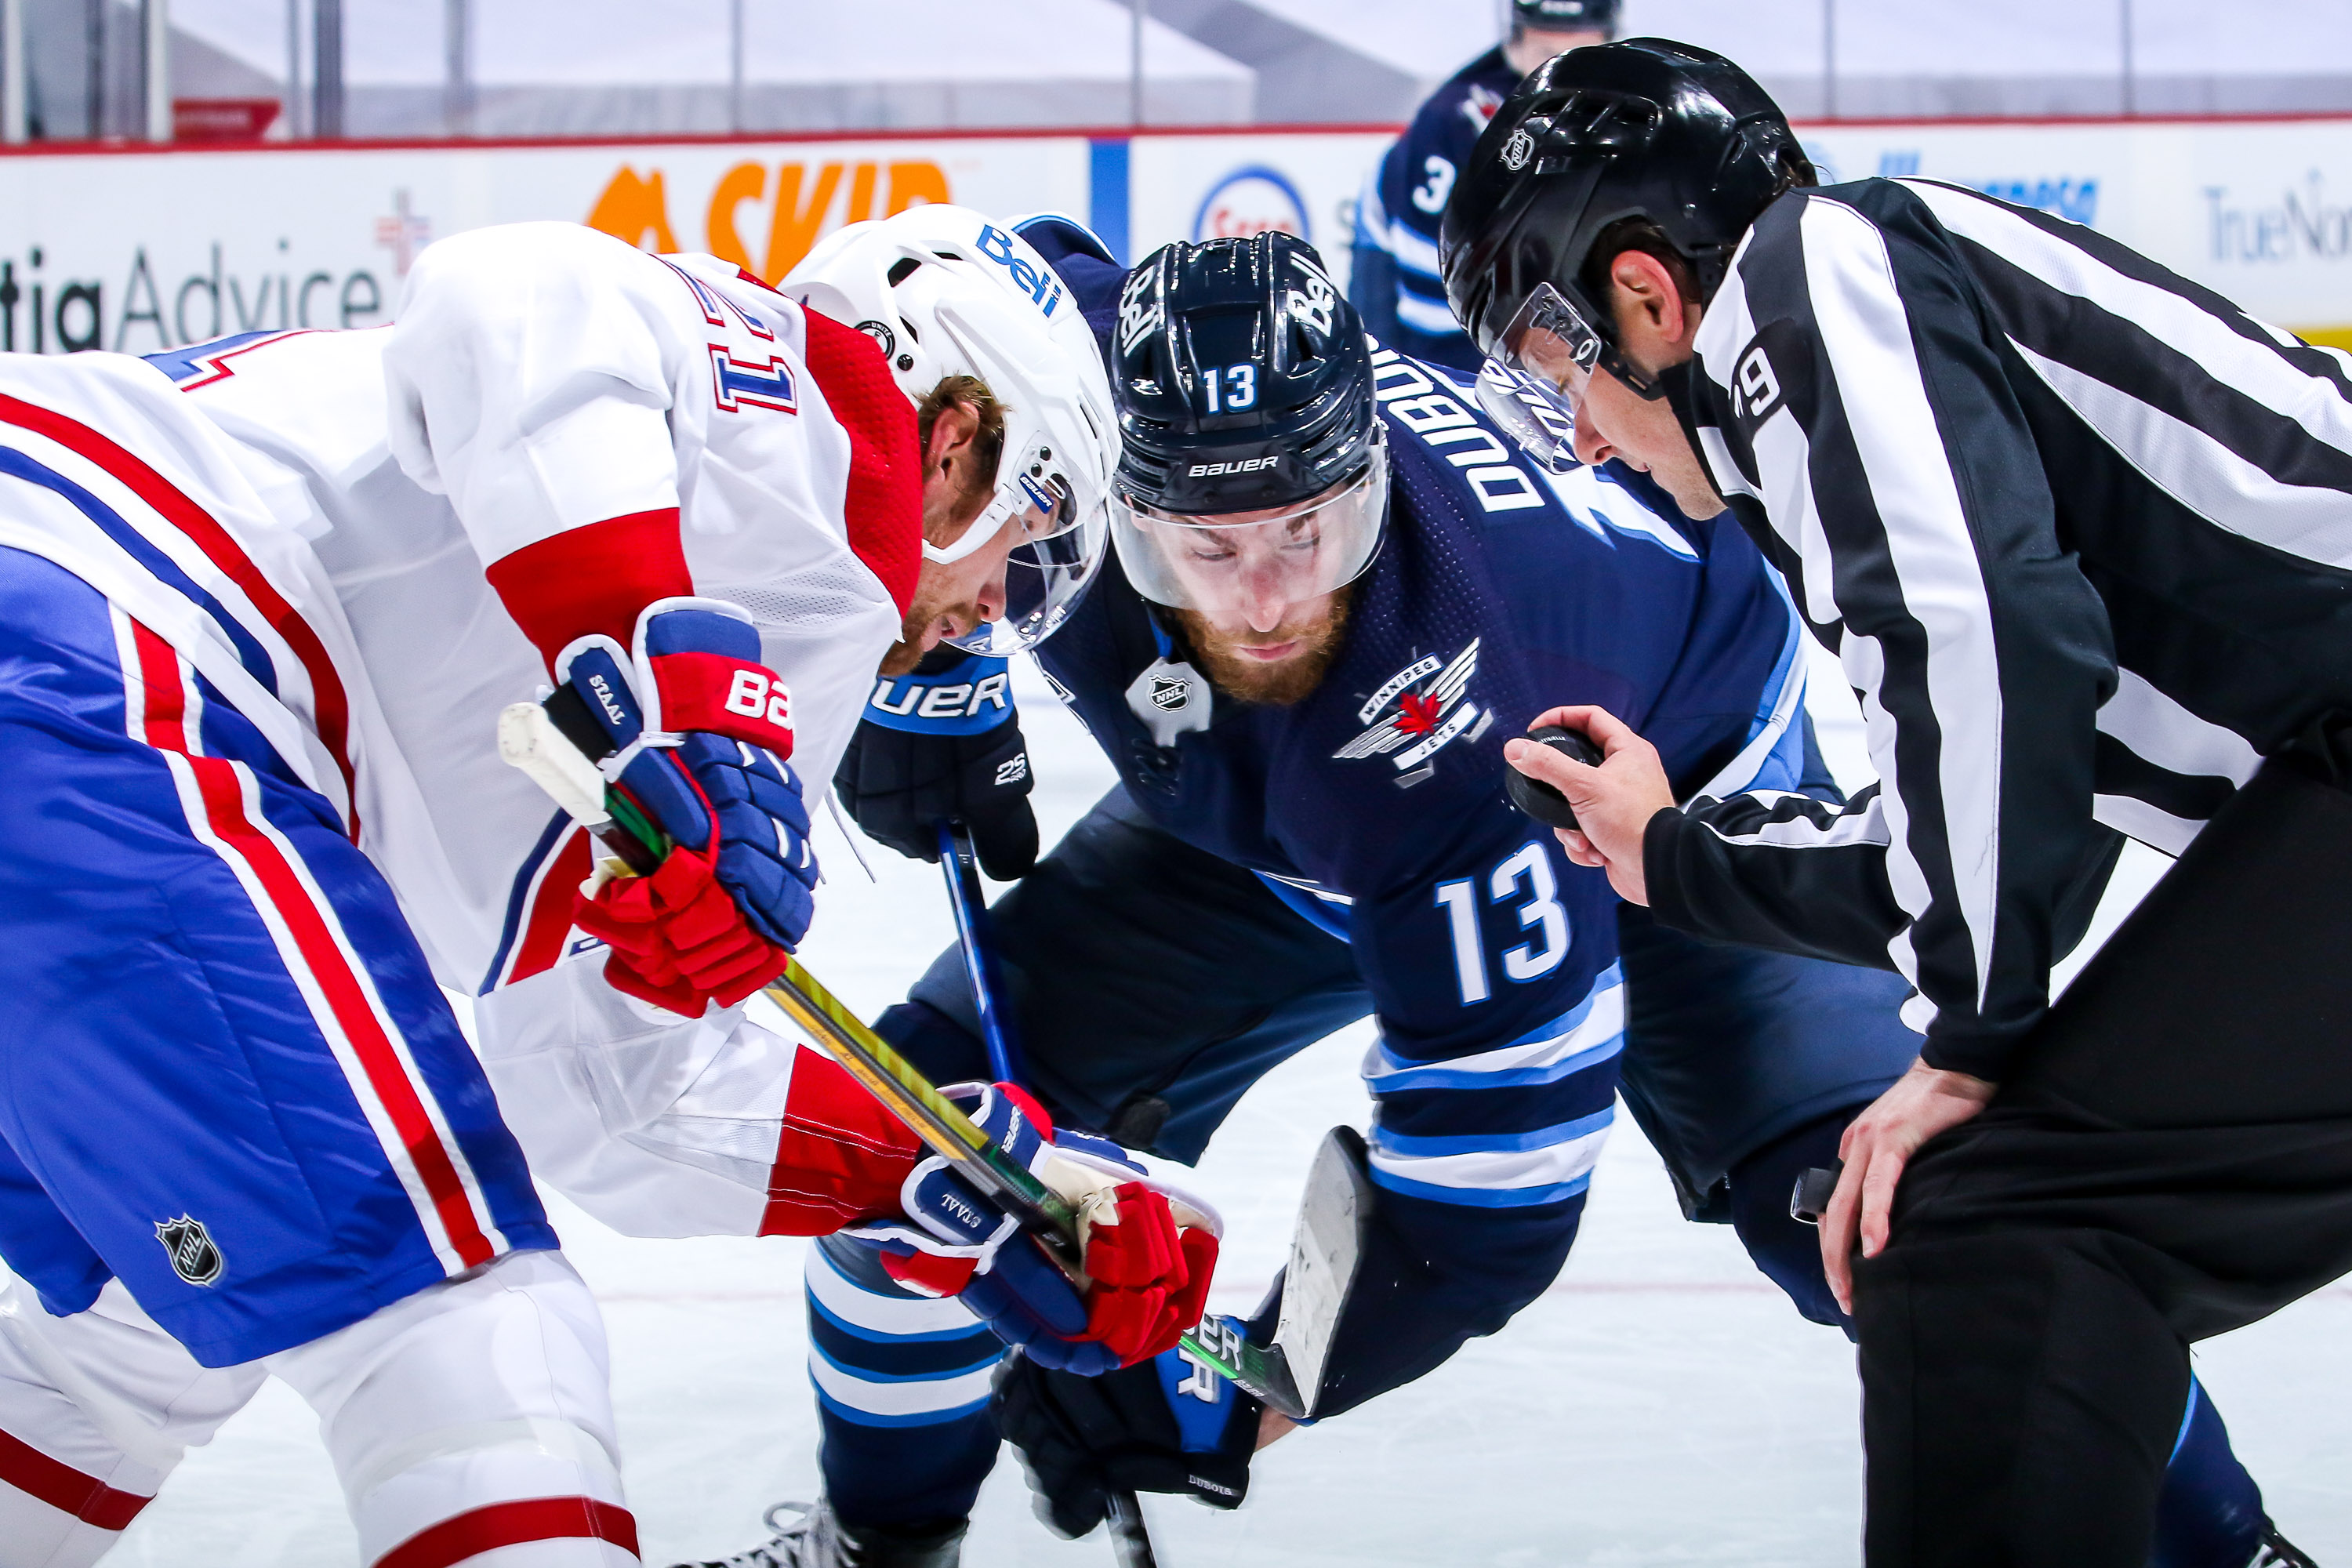 Eric Staal #21 of the Montreal Canadiens and Pierre-Luc Dubois #13 of the Winnipeg Jets get set for a second period face-off in Game One of the Second Round of the 2021 Stanley Cup Playoffs at the Bell MTS Place on June 2, 2021 in Winnipeg, Manitoba, Canada.